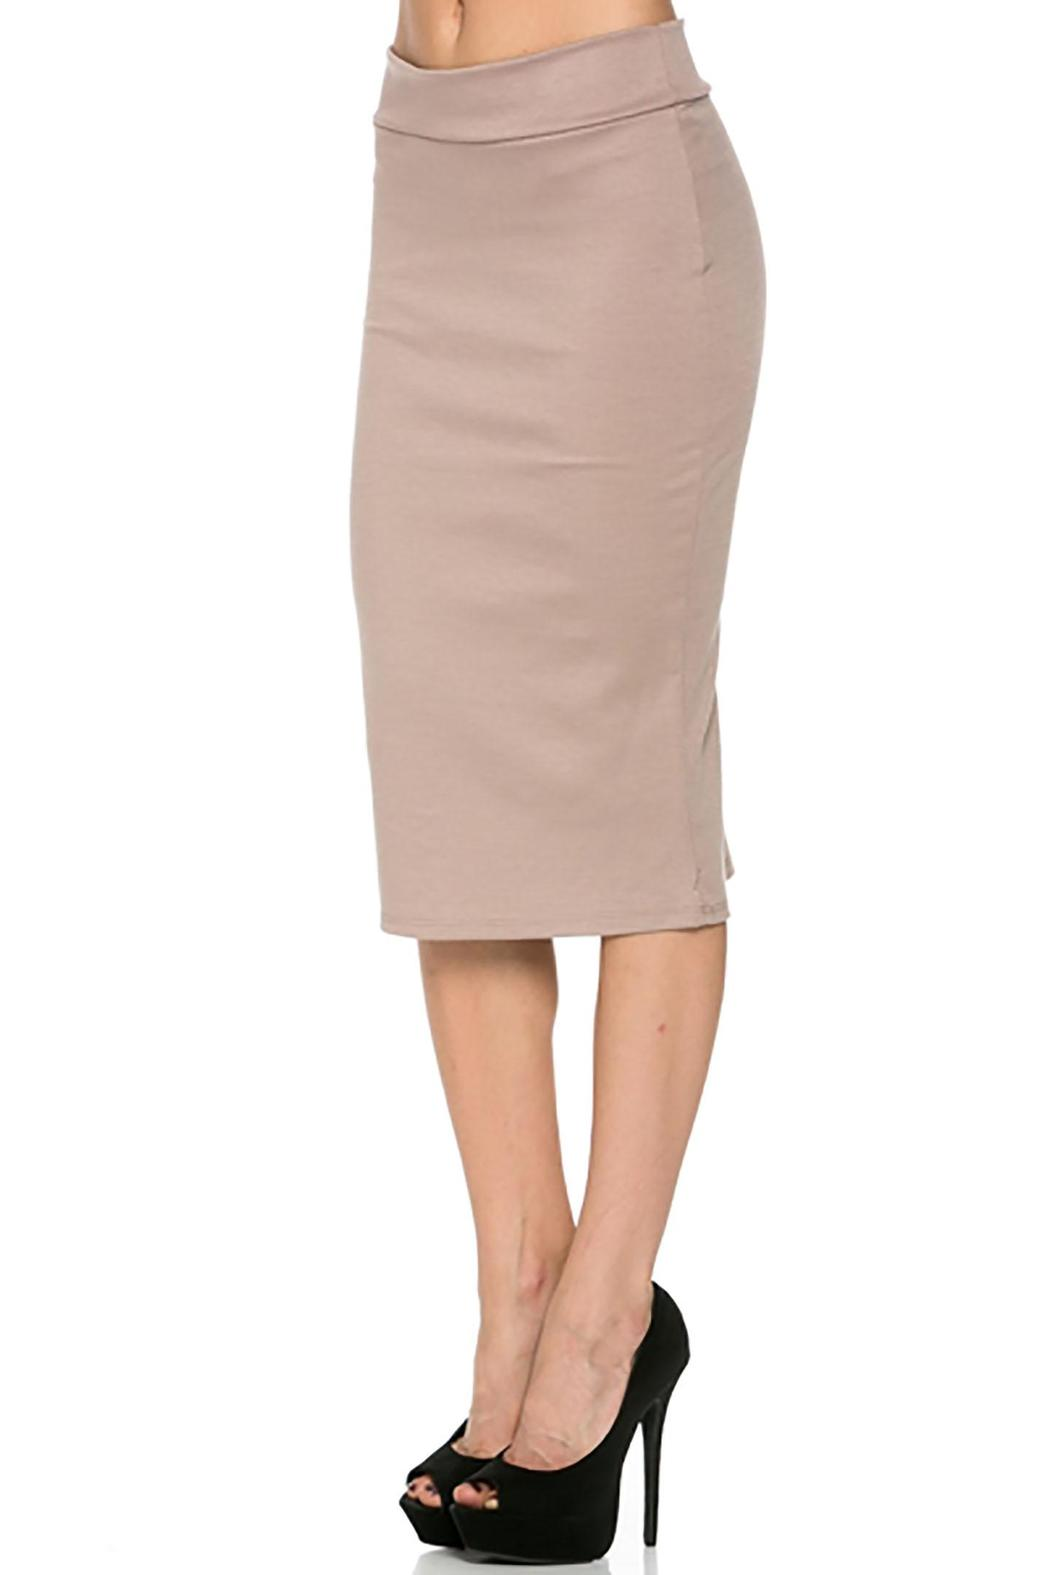 Azules Beige Pencil Skirt from Pennsylvania by Empire Styles ...